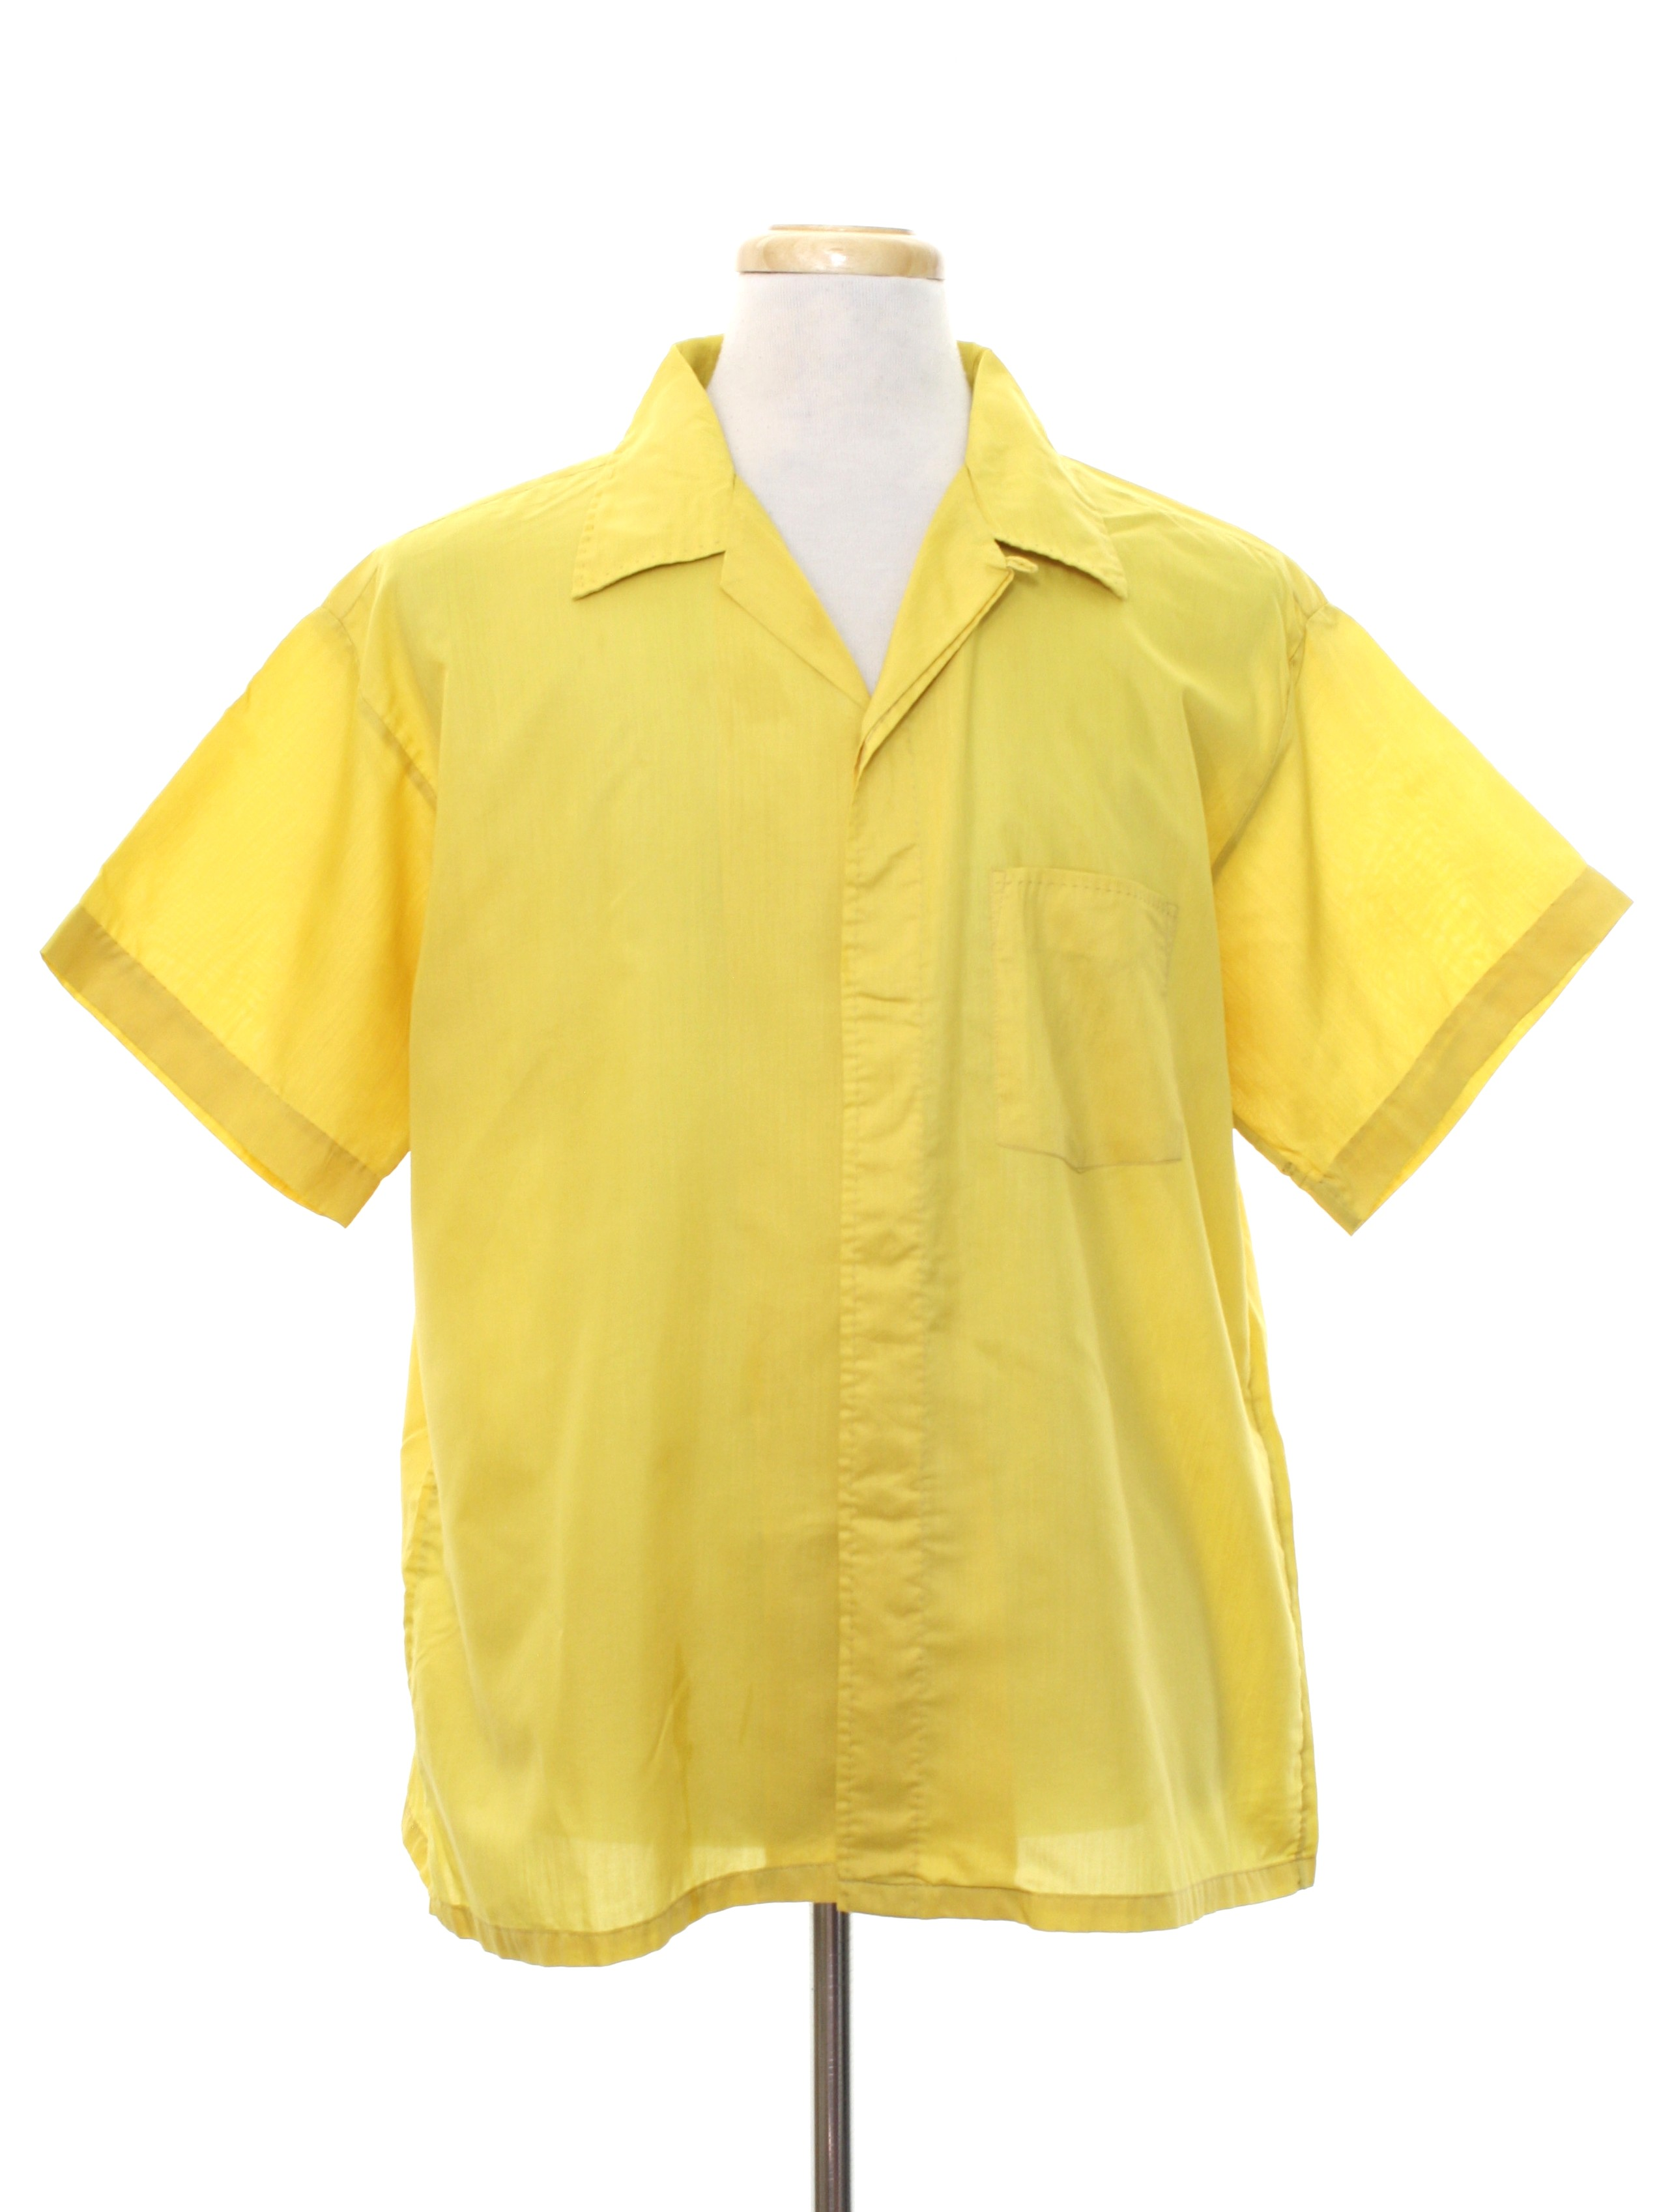 Pale Yellow T Shirt Design